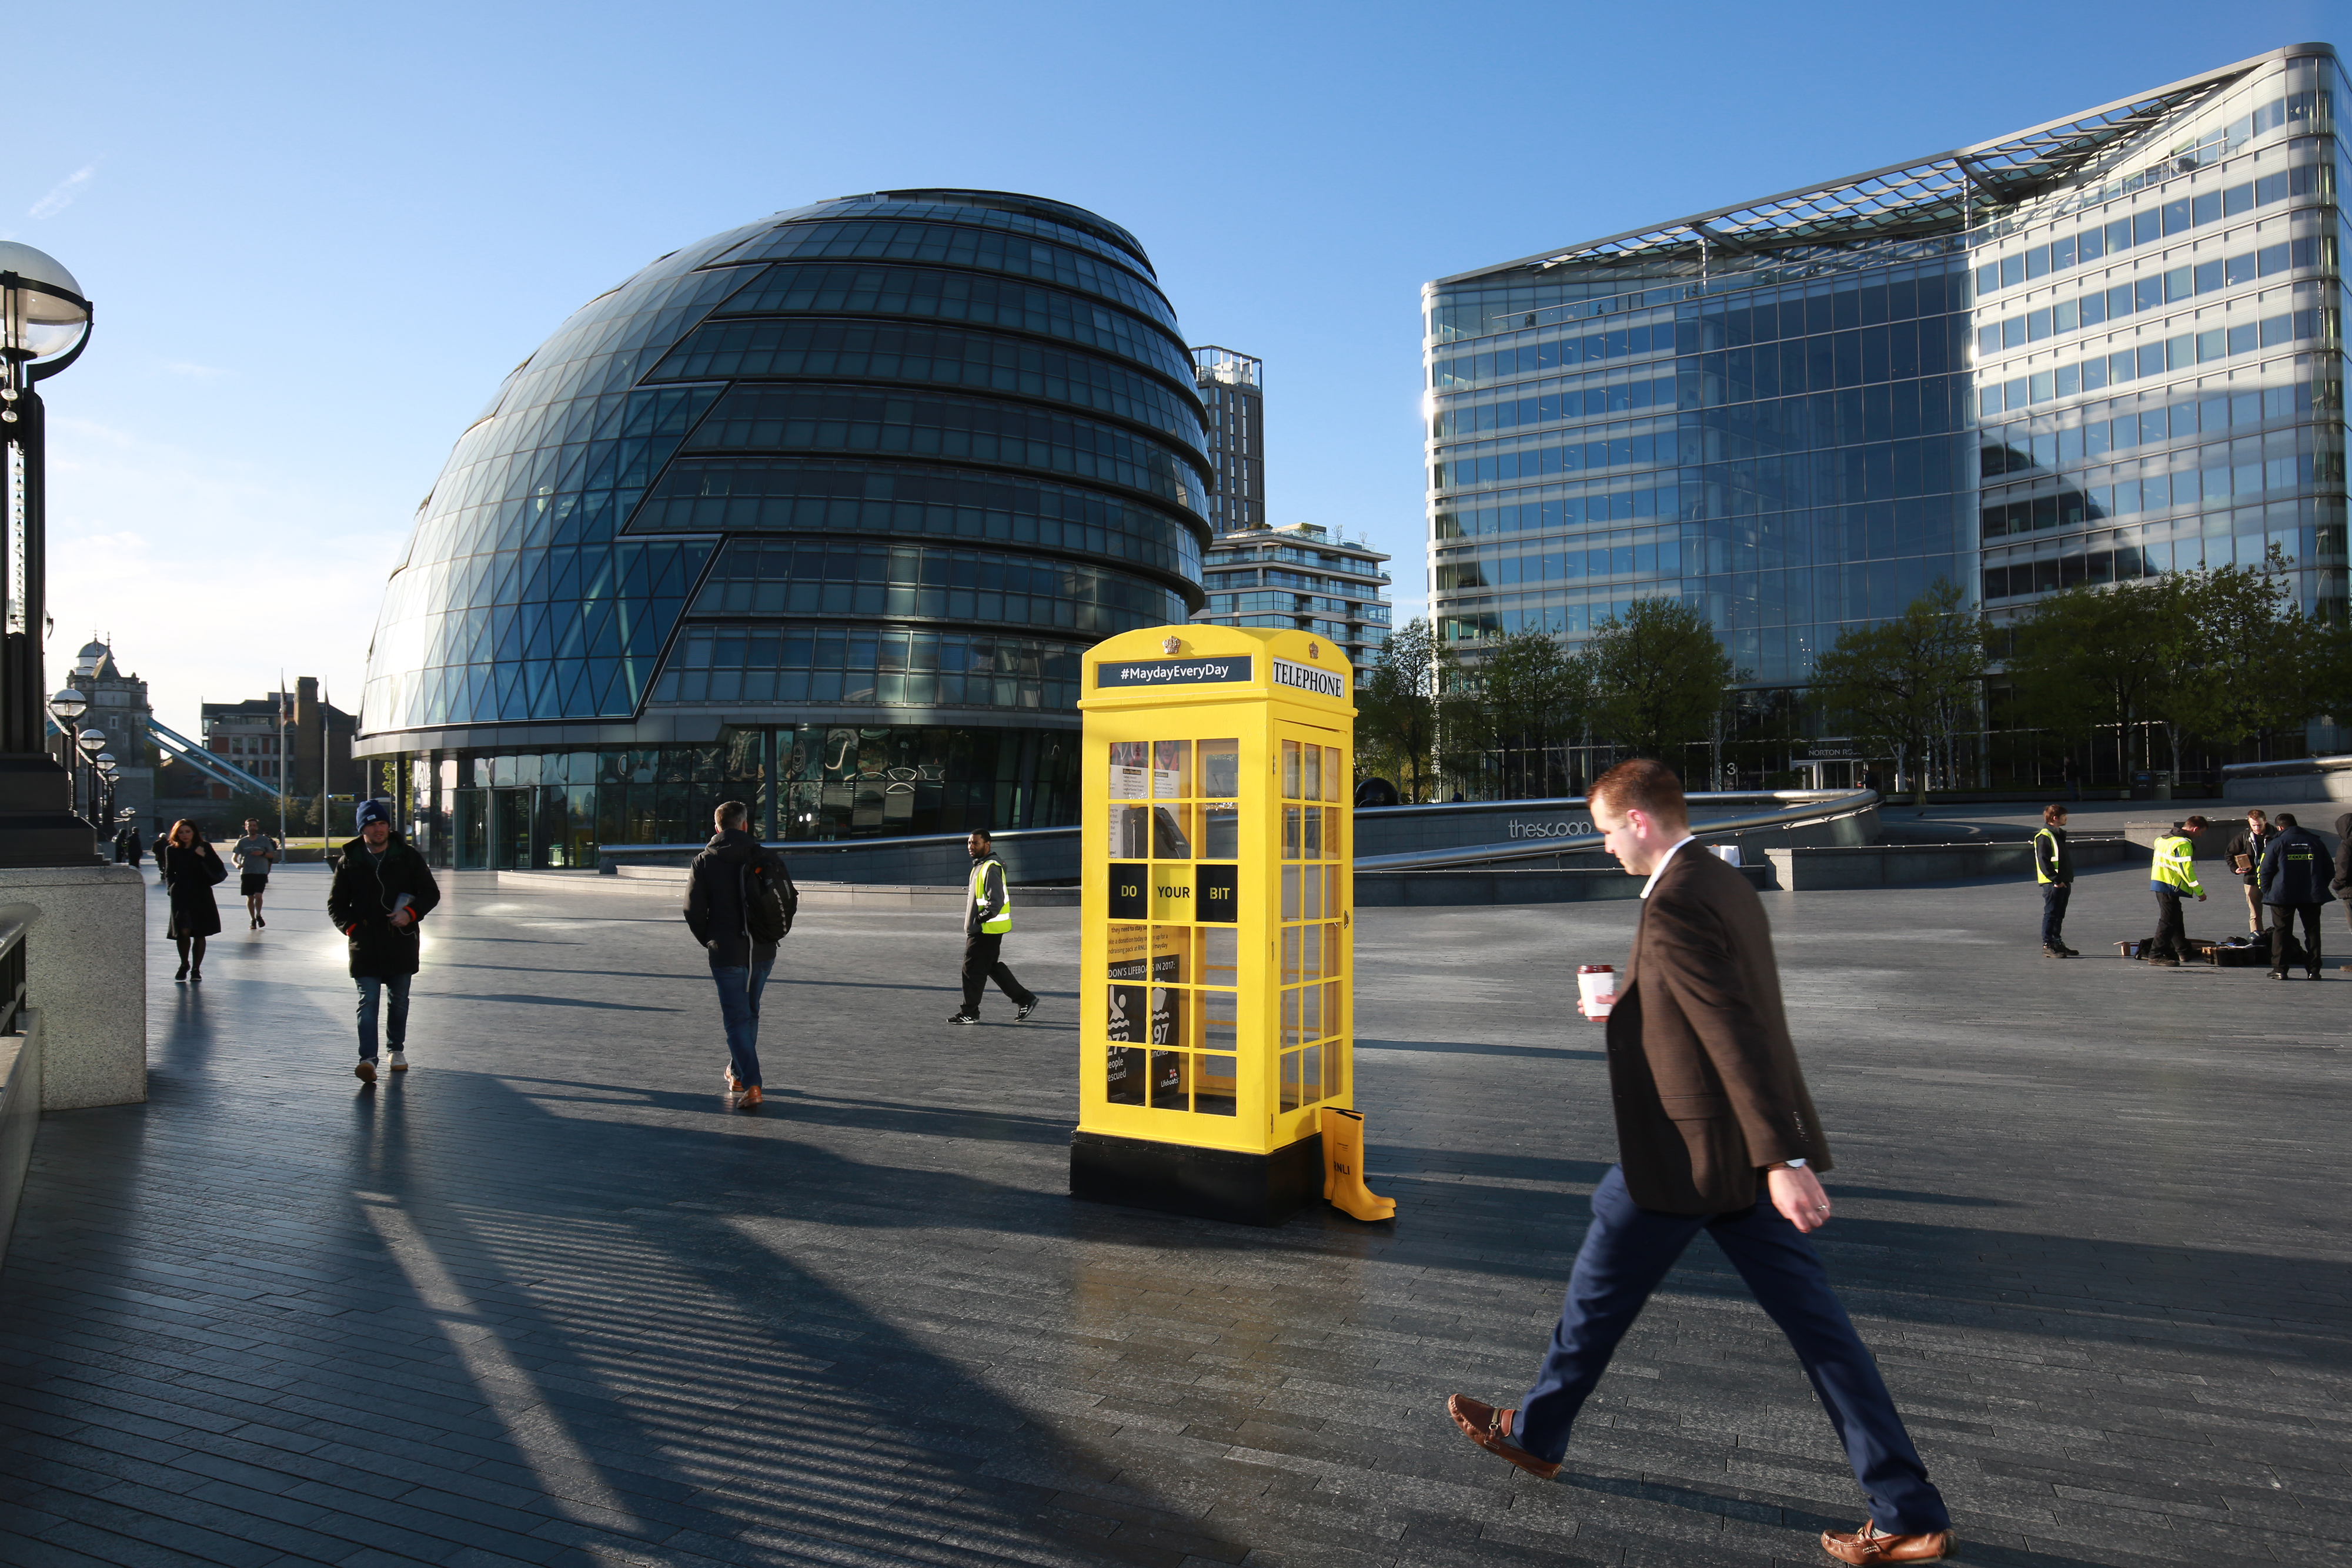 RNLI yellow phone box outside London's City Hall